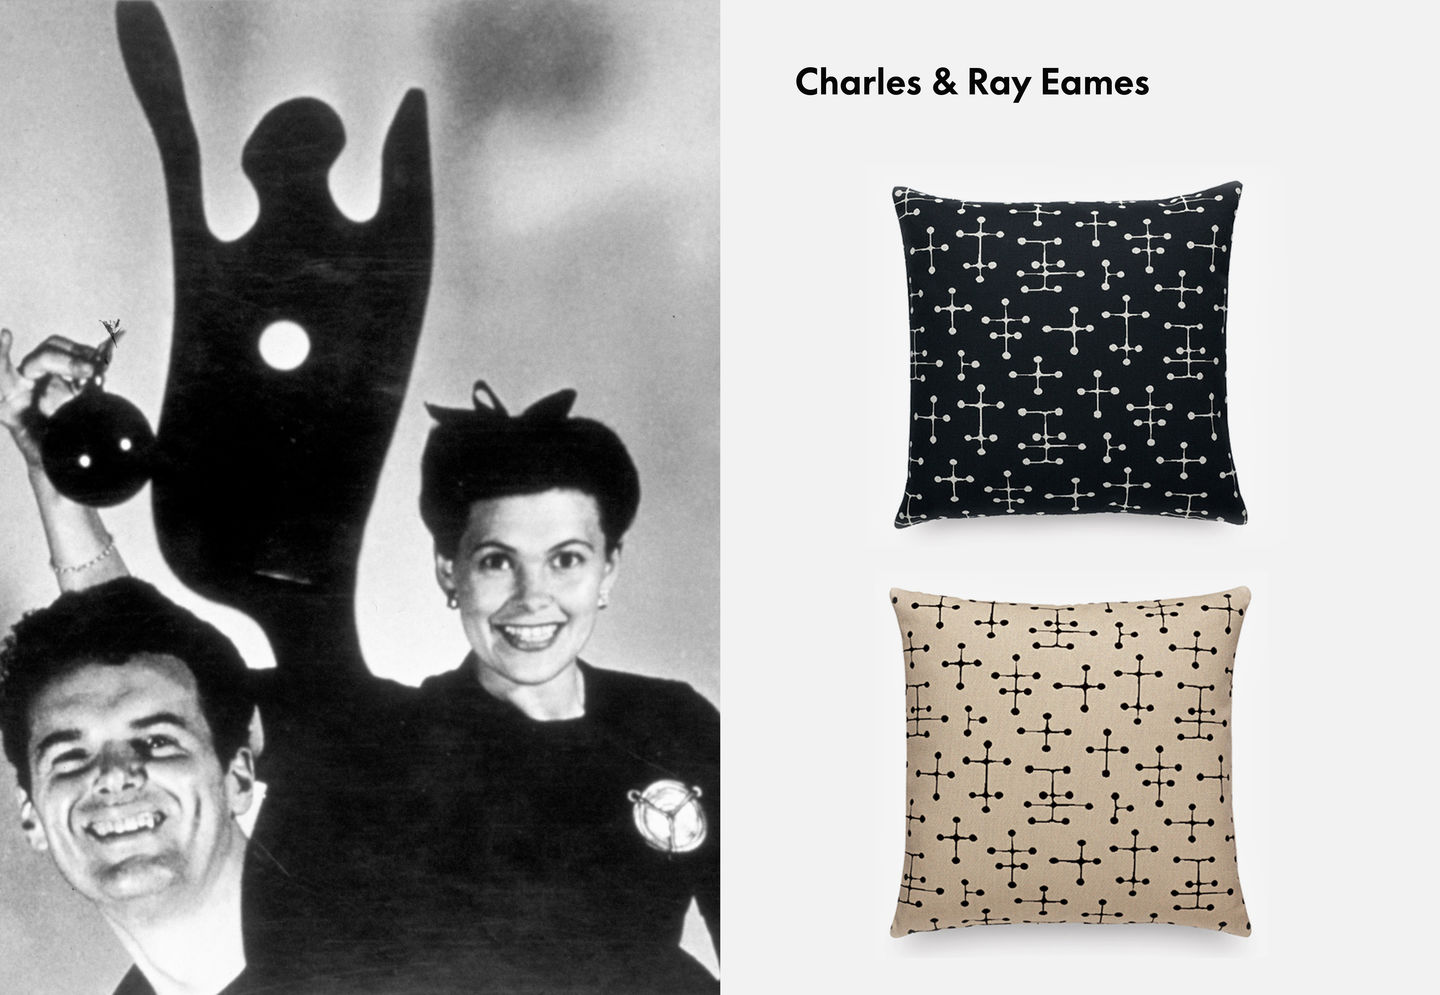 Charles & Ray Eames pictured with Maharam Pillows